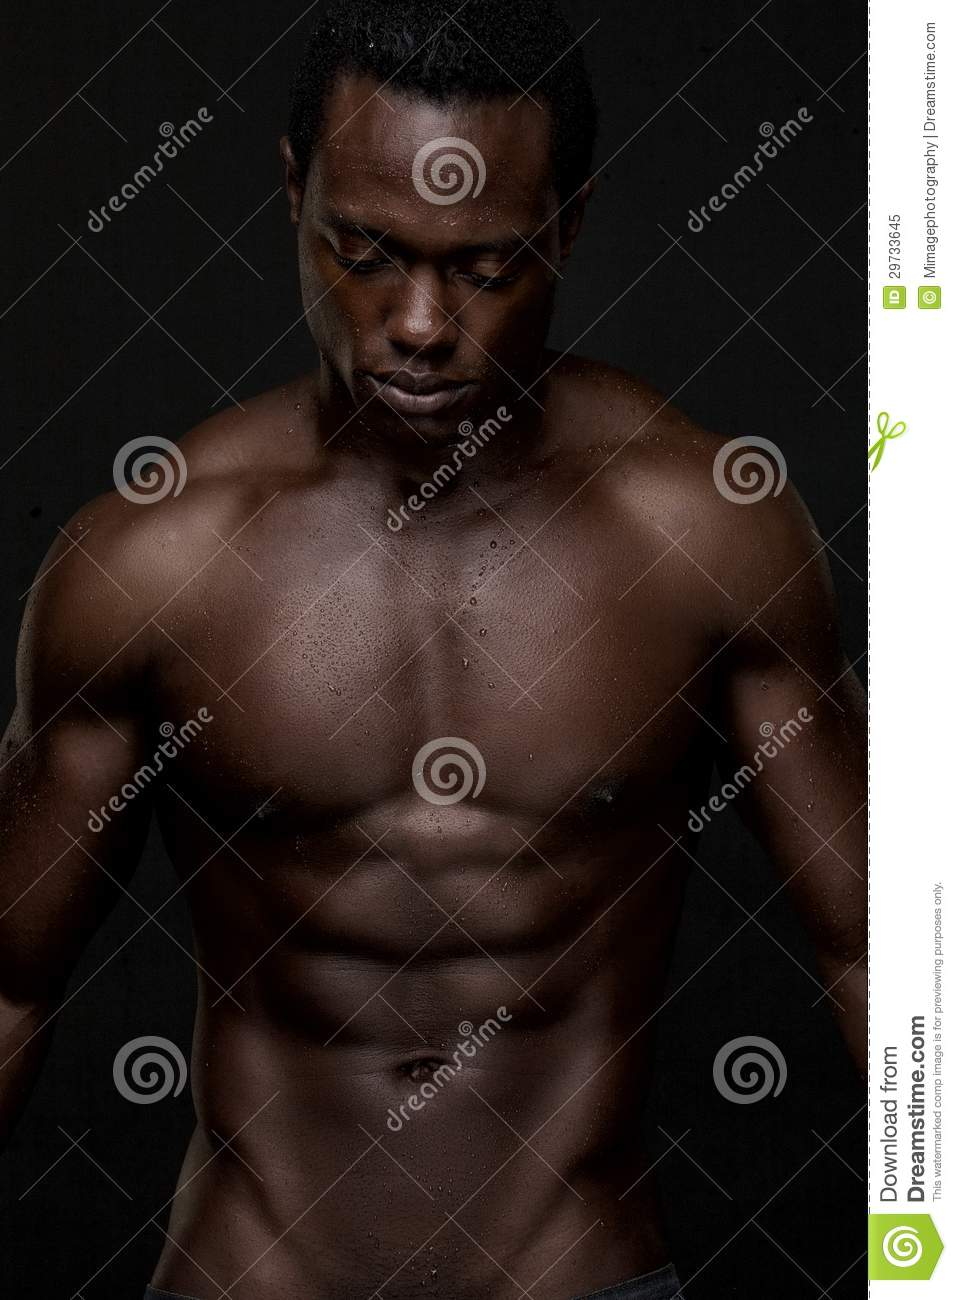 rencontre homme afro americain